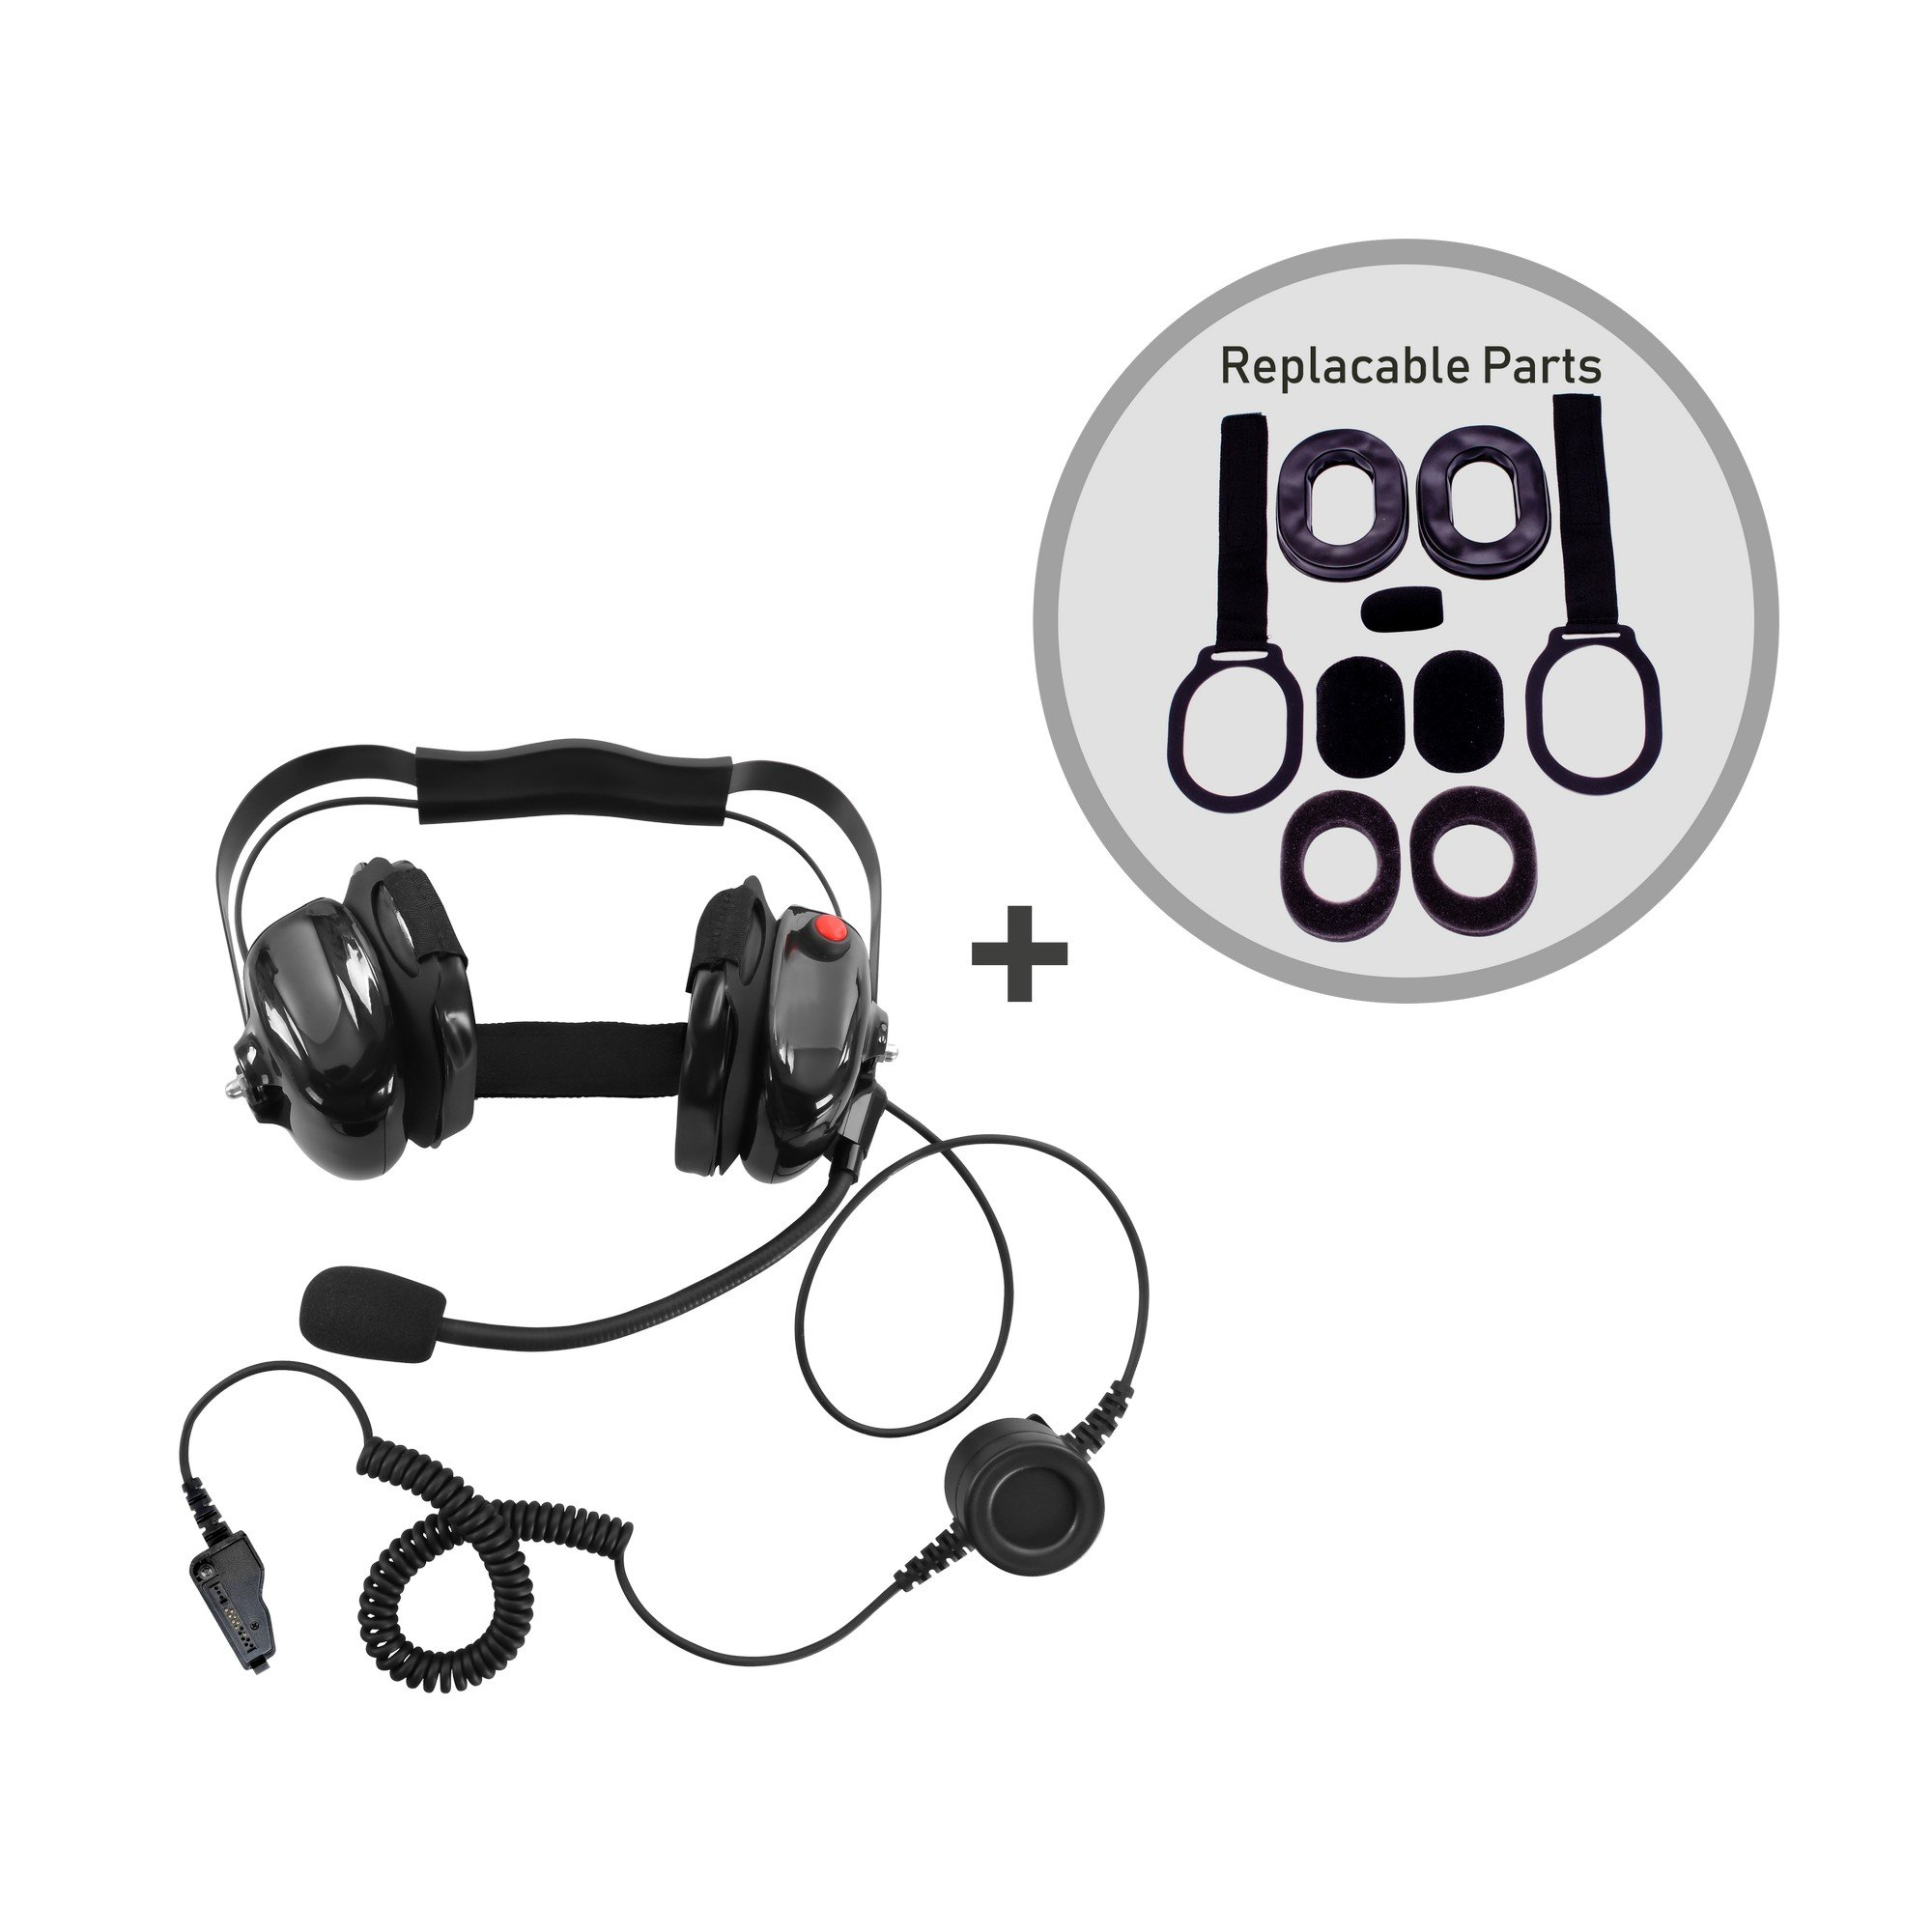 Bommeow BHDH50SP1-BK-K3 Noise Isolation Headset for Kenwood Radio NEXEDGE in Black With Service Part Replacement